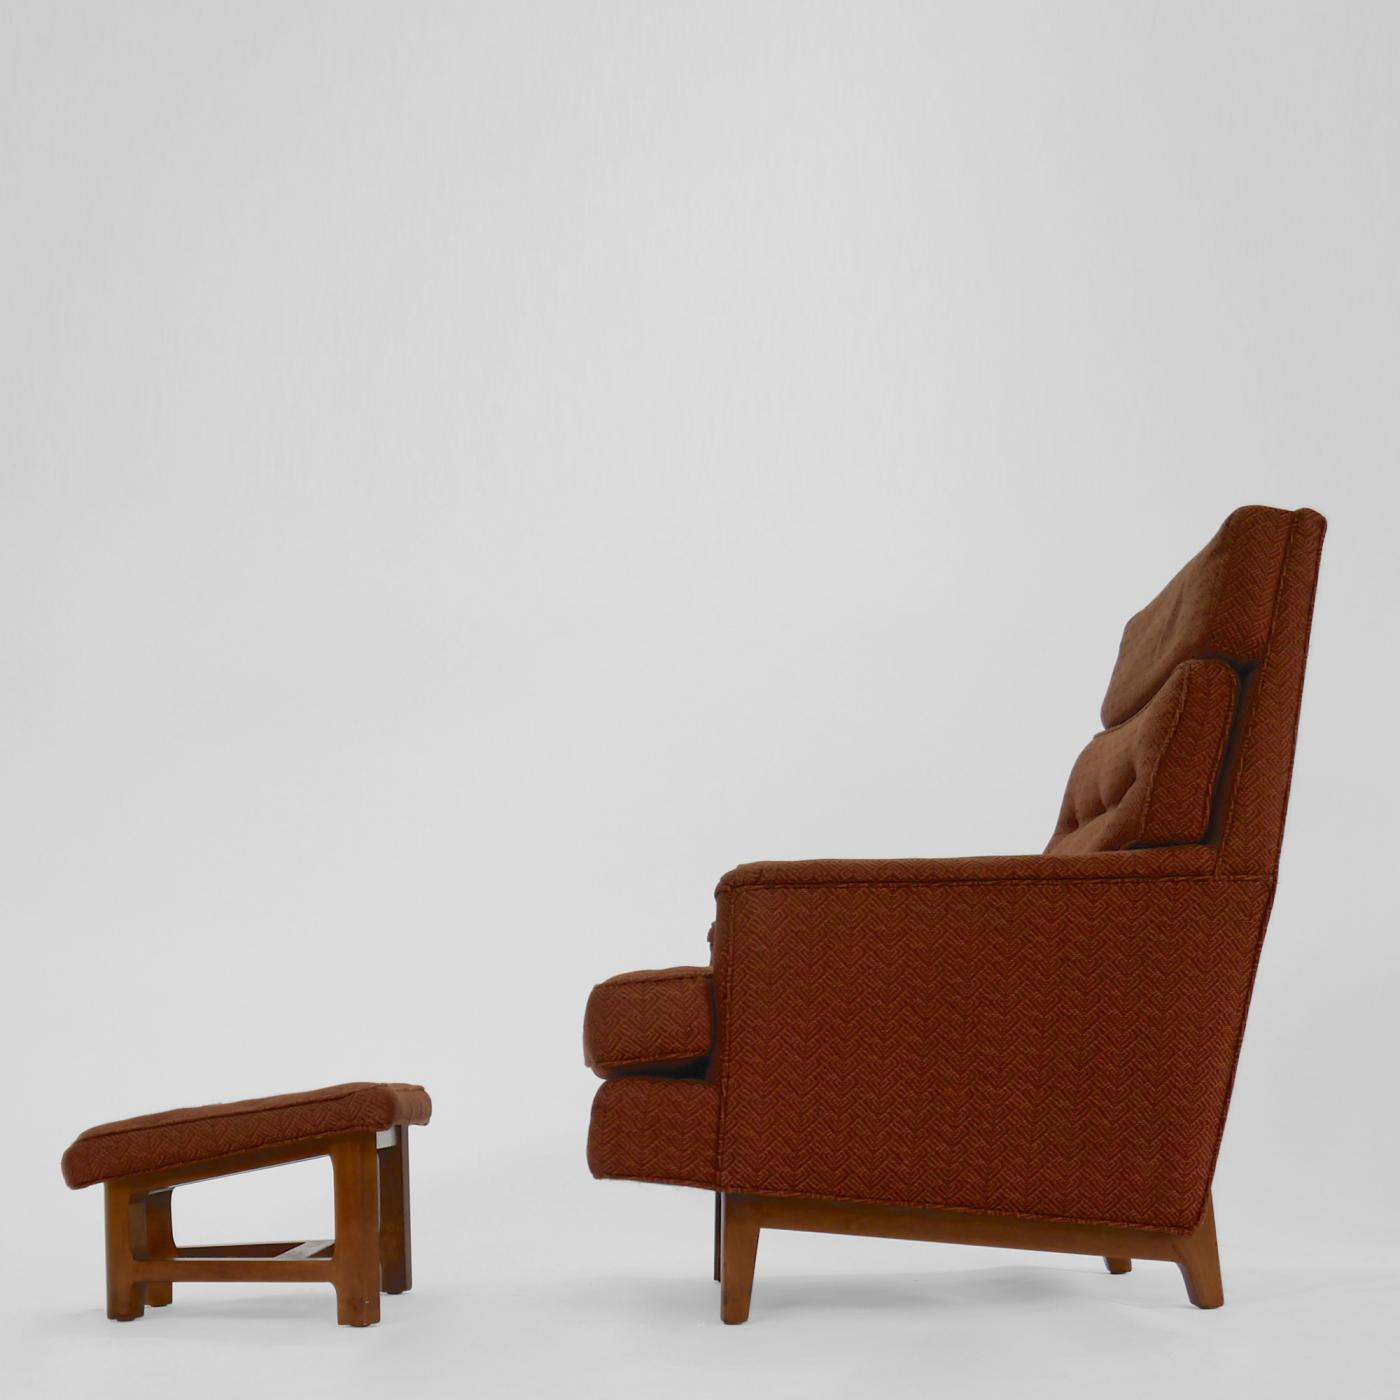 Edward wormley lounge chair and ottoman by edward wormley for dunbar - Edward wormley chairs ...